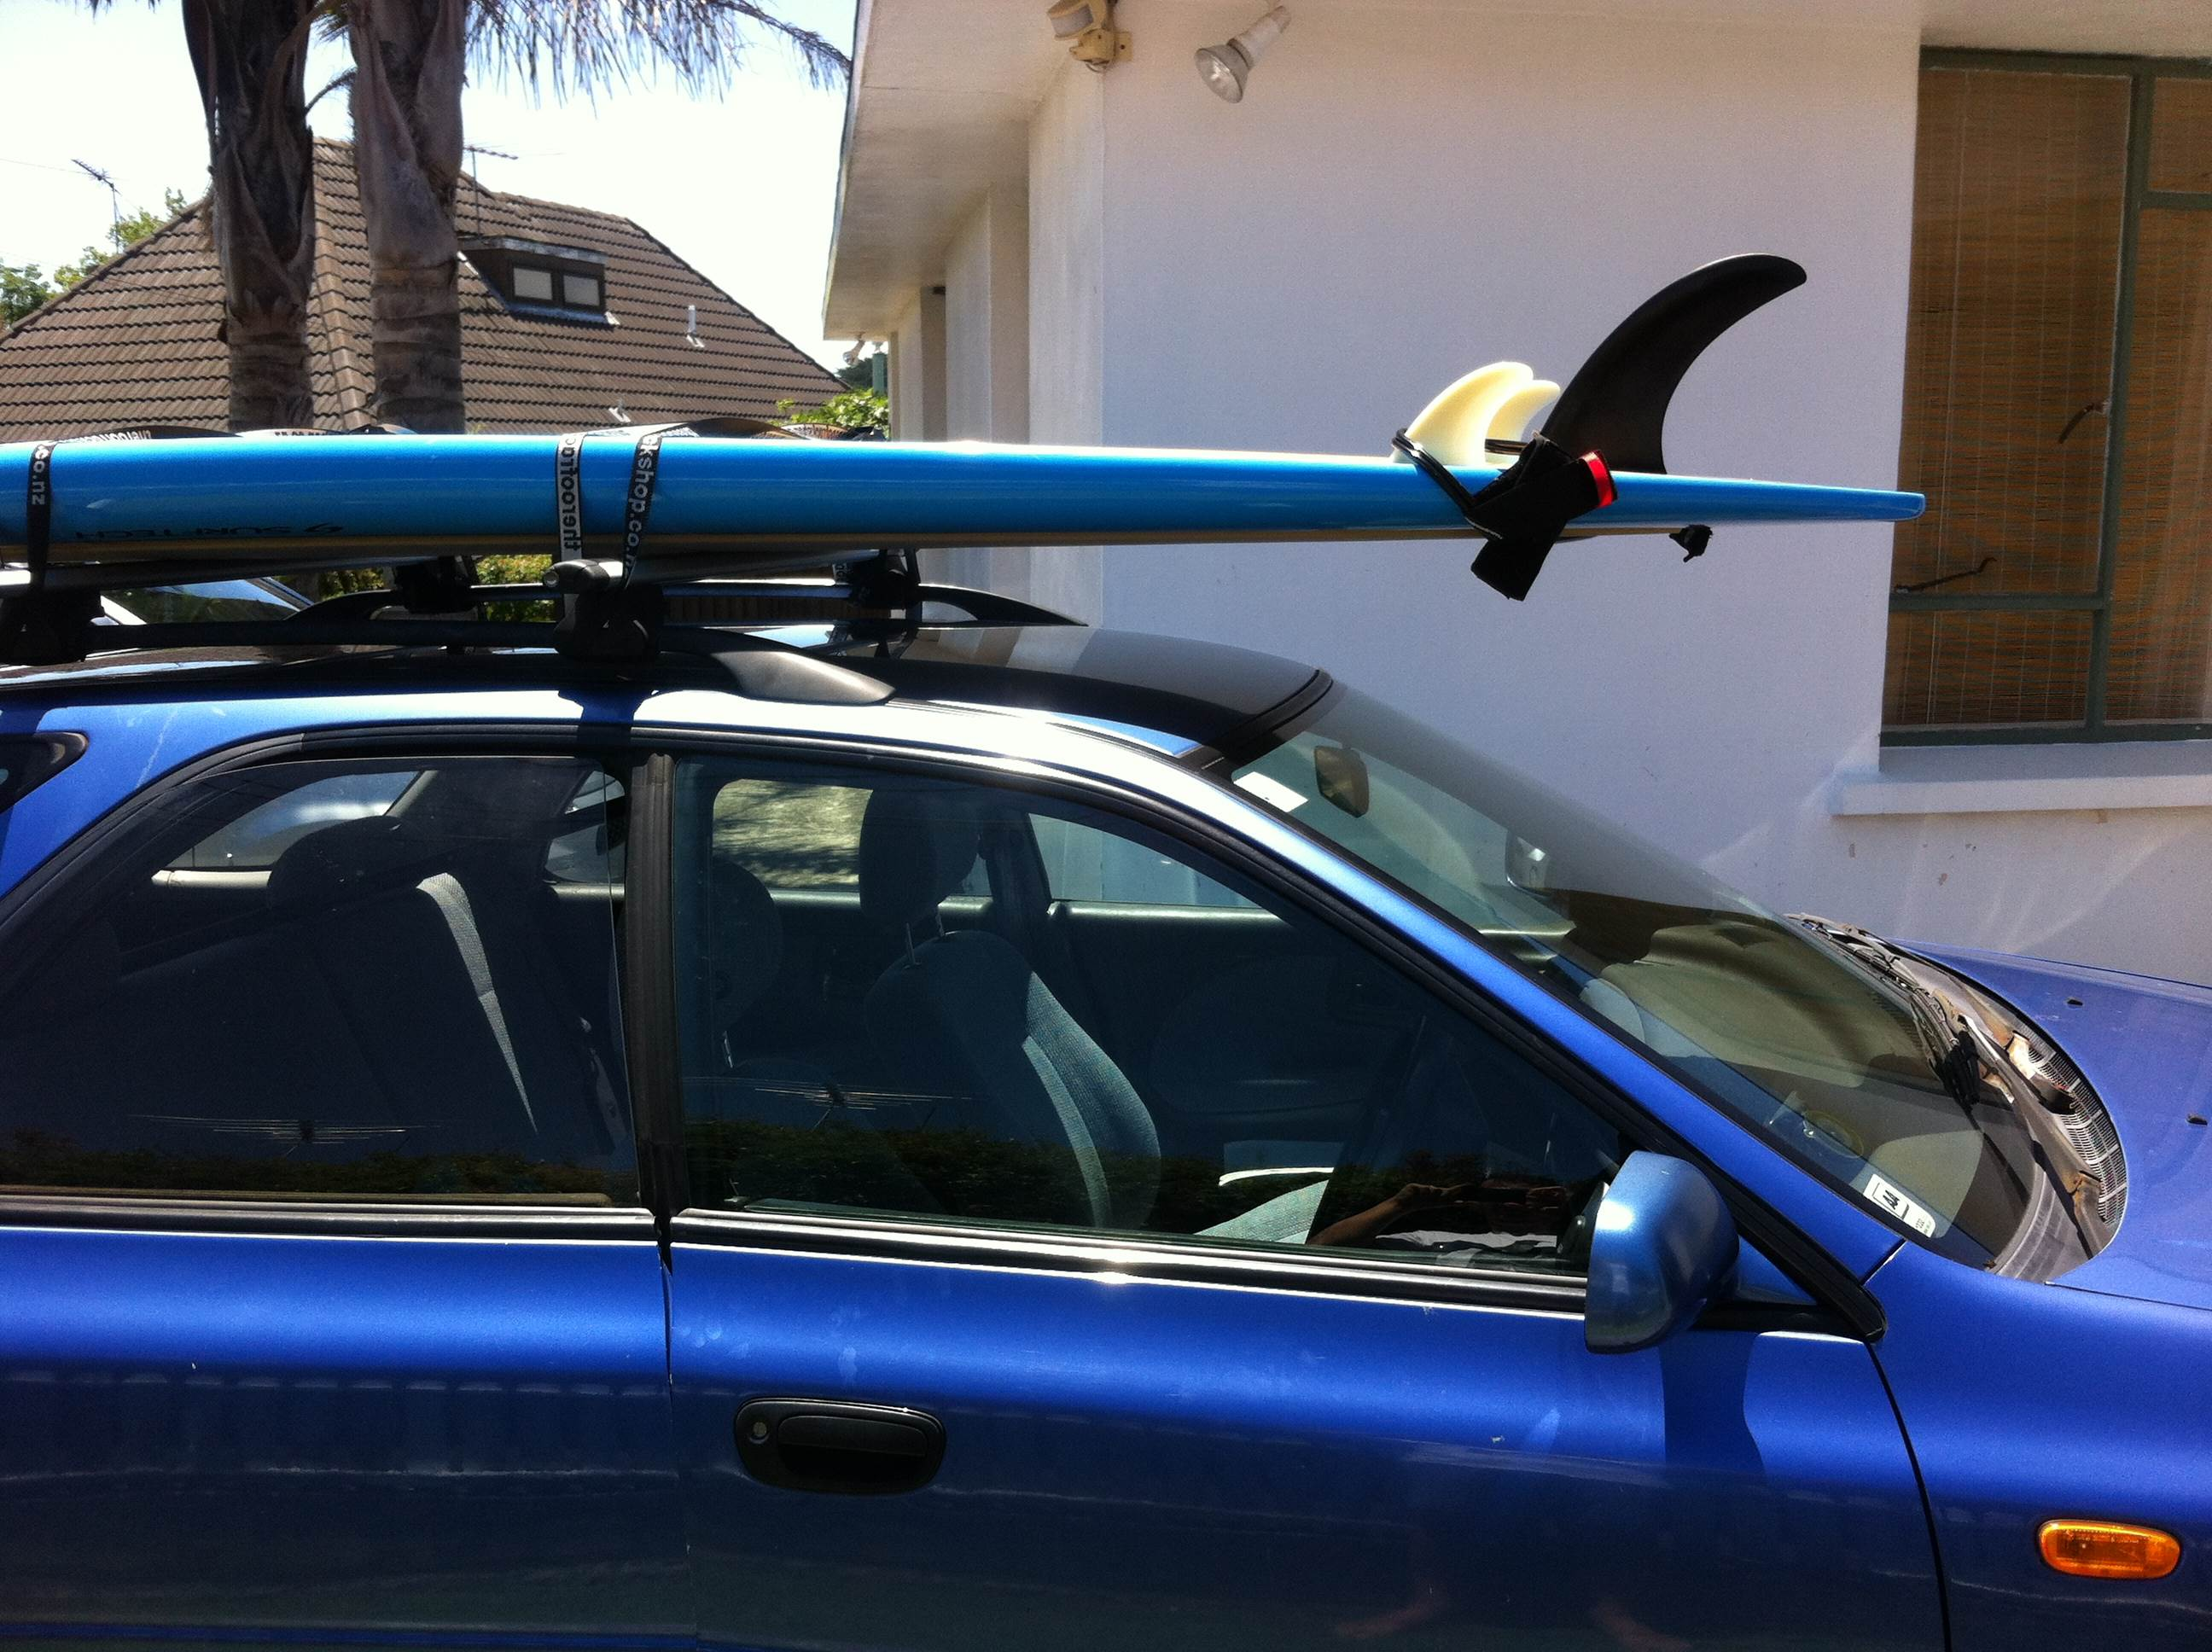 kit boards up car paddleboard stand paddle board deluxe rack